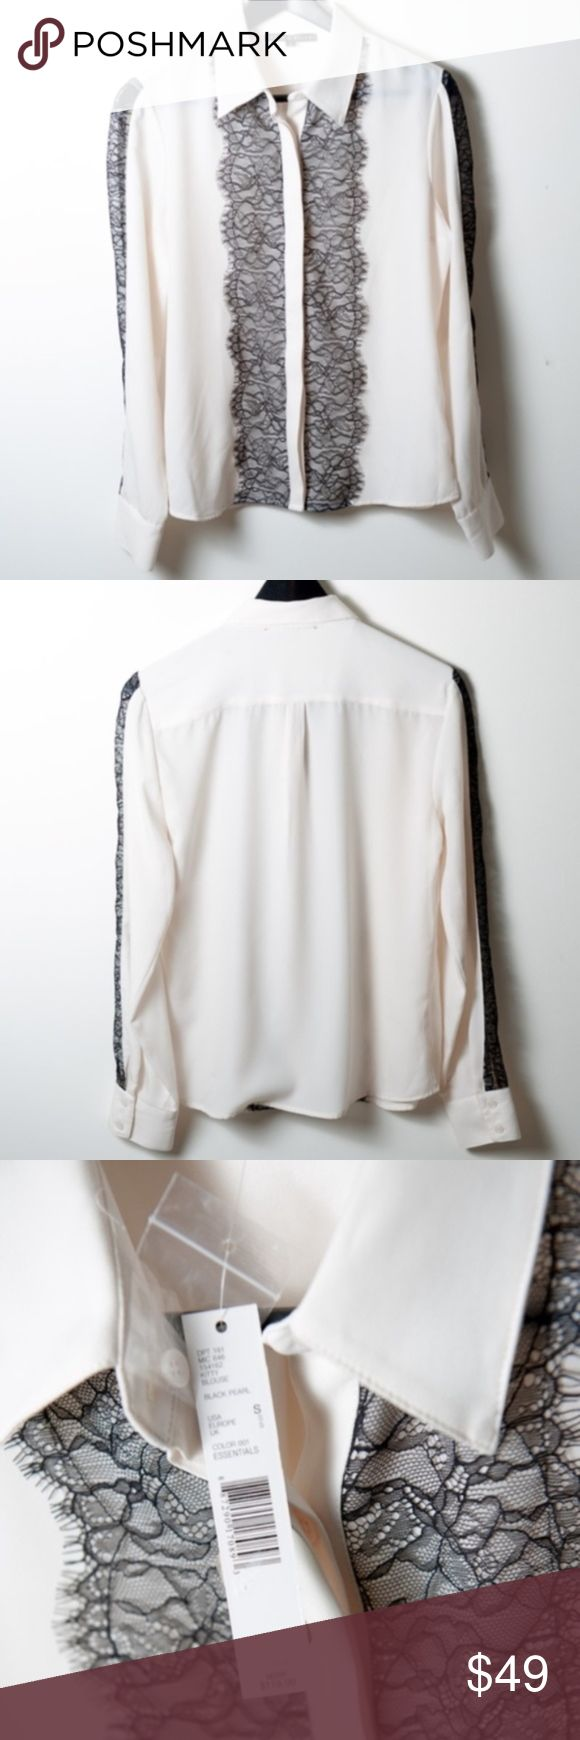 NWT Antonio Melani Off White Button Down Blouse New with tags Antonio Melani blouse. Off white, button down. Black lace trim on front and see through lace trim down arms. Size small.  tags - work wear, professional, weekend, date night, night out, girls night, sexy ANTONIO MELANI Tops Blouses